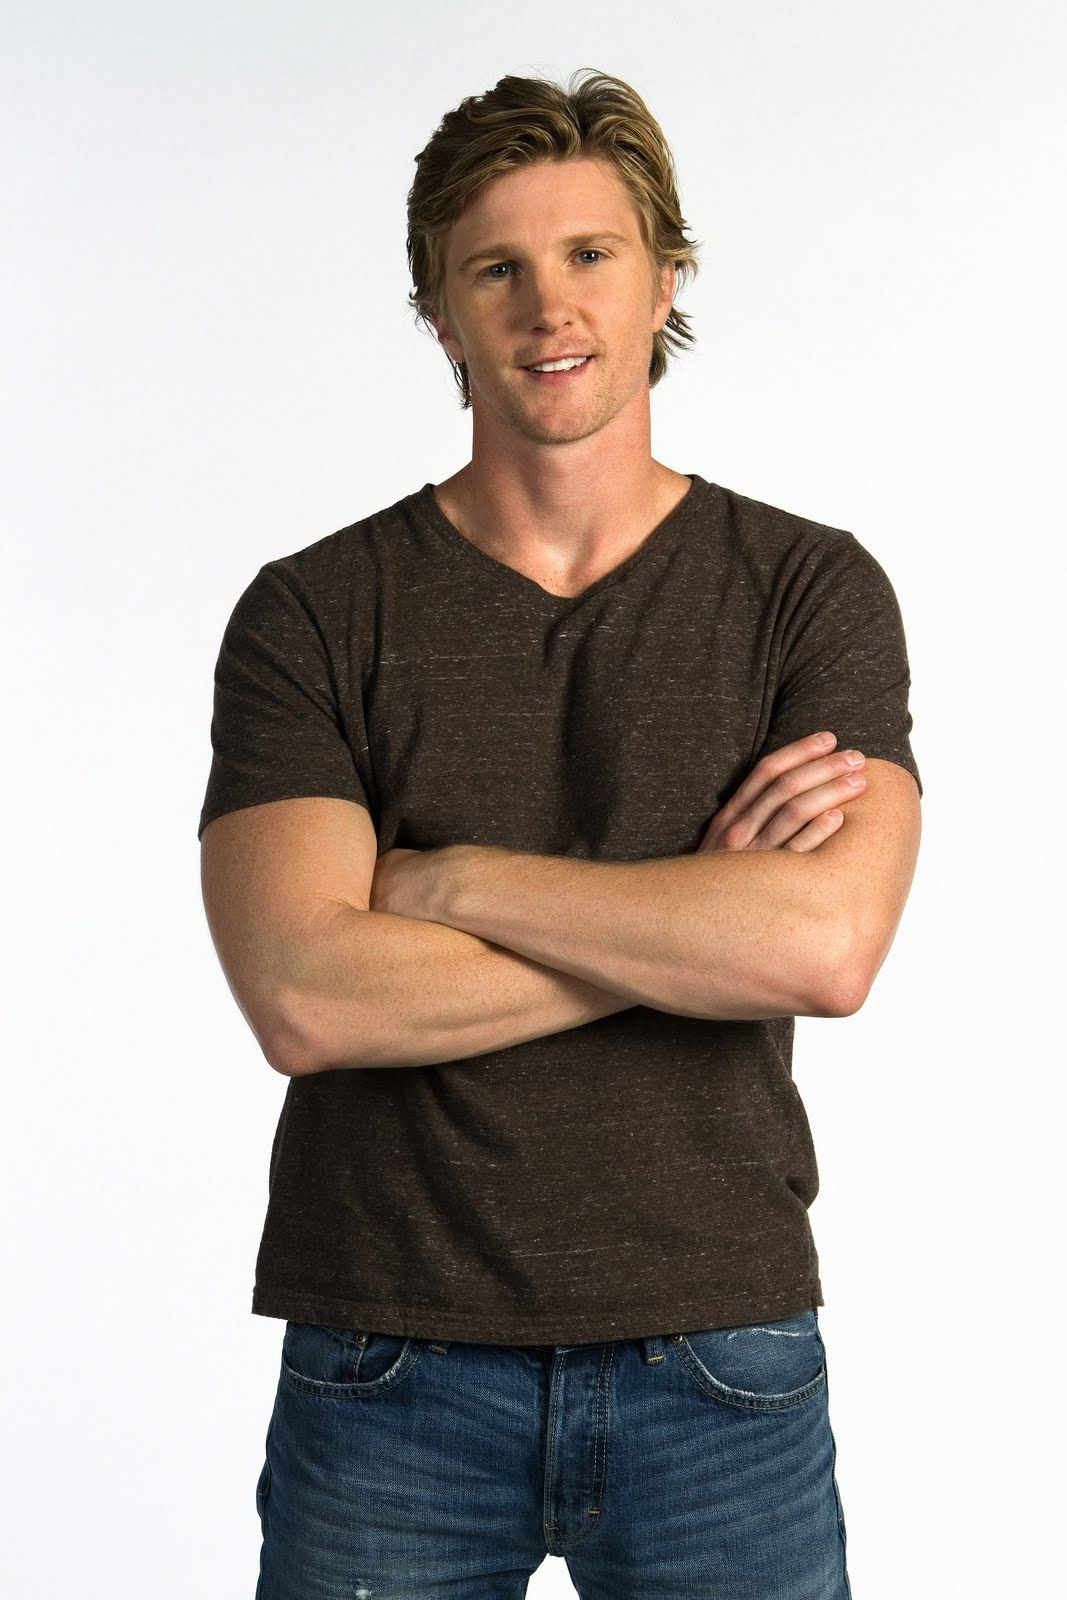 thad luckinbill twinthad luckinbill la la land, thad luckinbill instagram, thad luckinbill wife, thad luckinbill age, thad luckinbill bio, thad luckinbill twin, thad luckinbill imdb, thad luckinbill net worth, thad luckinbill family, thad luckinbill twitter, thad luckinbill nip/tuck, thad luckinbill young and the restless, thad luckinbill parents, thad luckinbill oscars, thad luckinbill 2017, thad luckinbill movies, thad luckinbill brother, thad luckinbill related to laurence luckinbill, thad luckinbill amelia heinle, thad luckinbill la la land producer